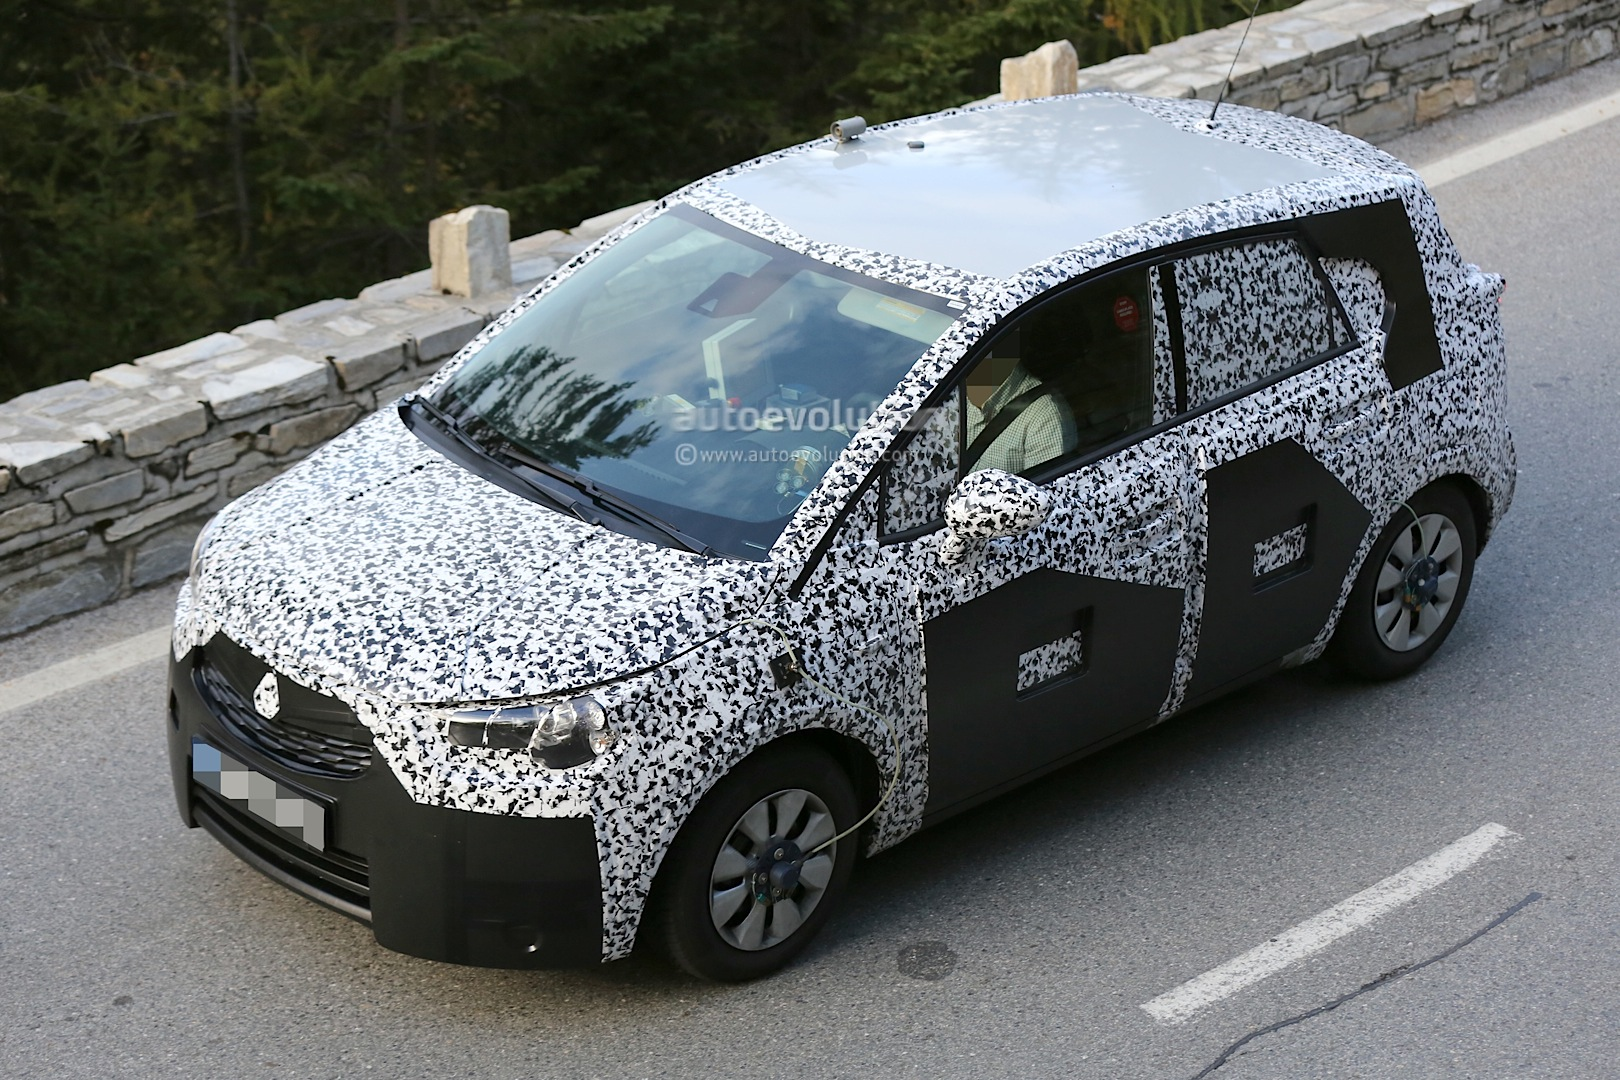 spyshots 2017 opel meriva prototype shows new details autoevolution. Black Bedroom Furniture Sets. Home Design Ideas